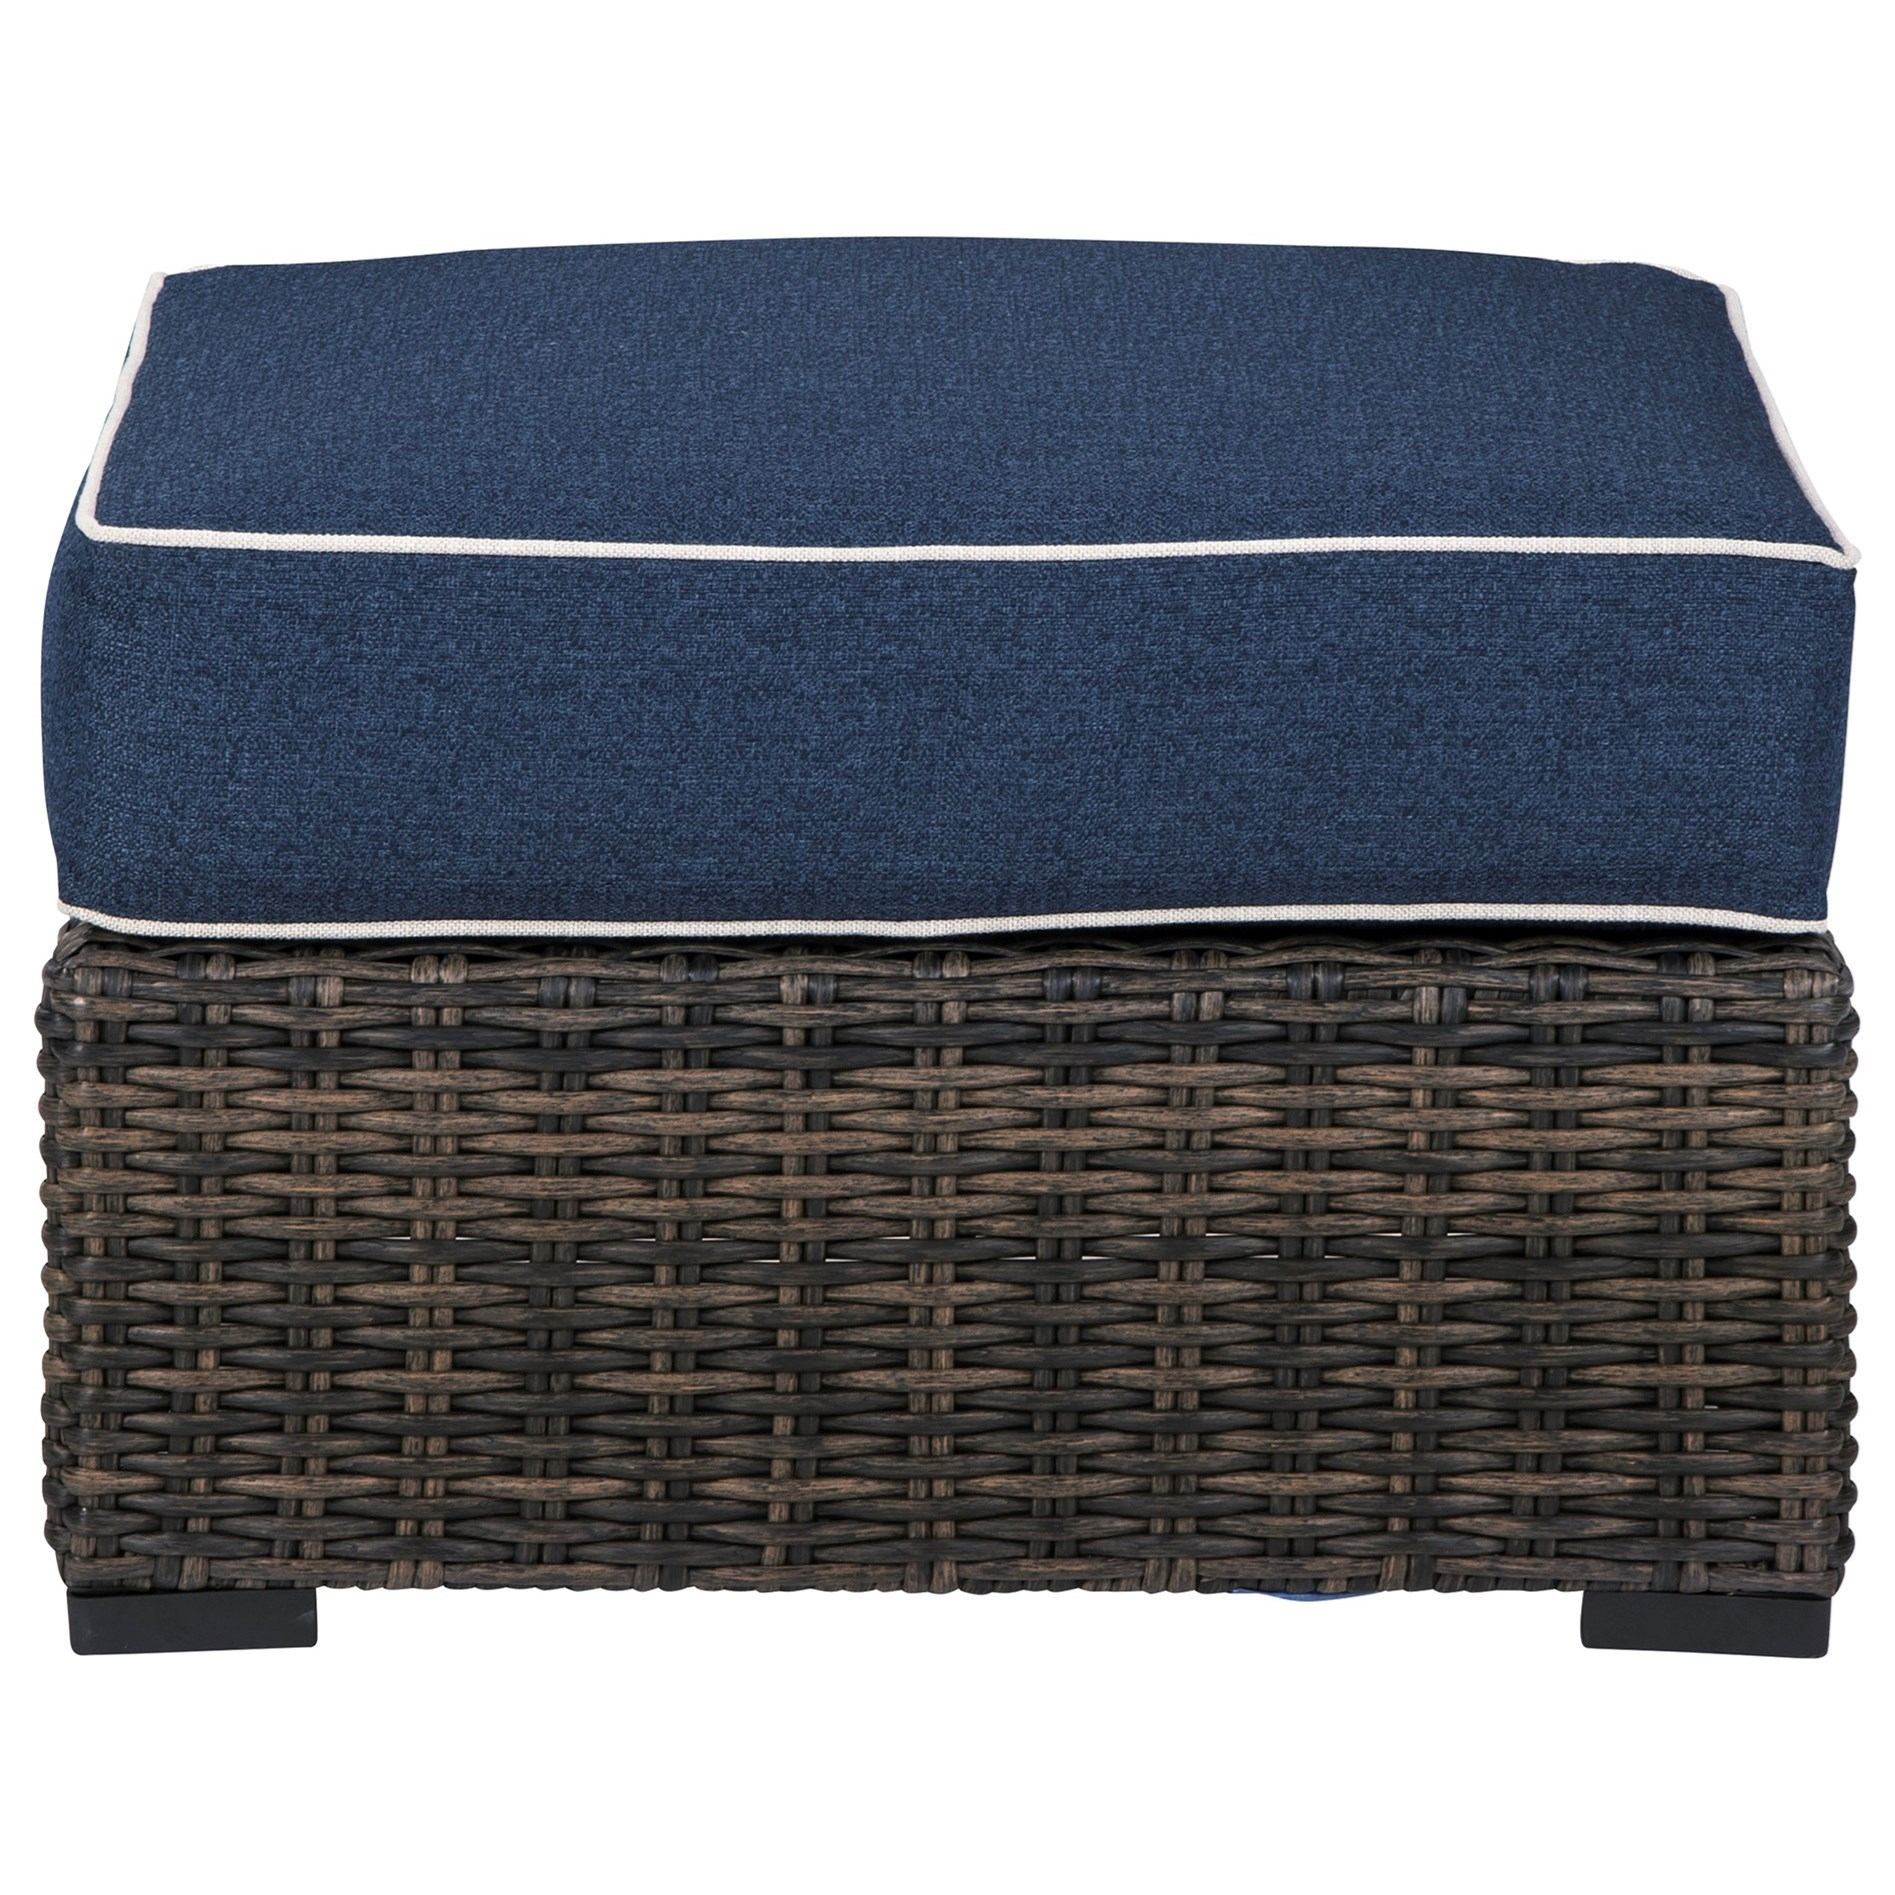 Grasson Lane Ottoman with Cushion by Signature at Walker's Furniture